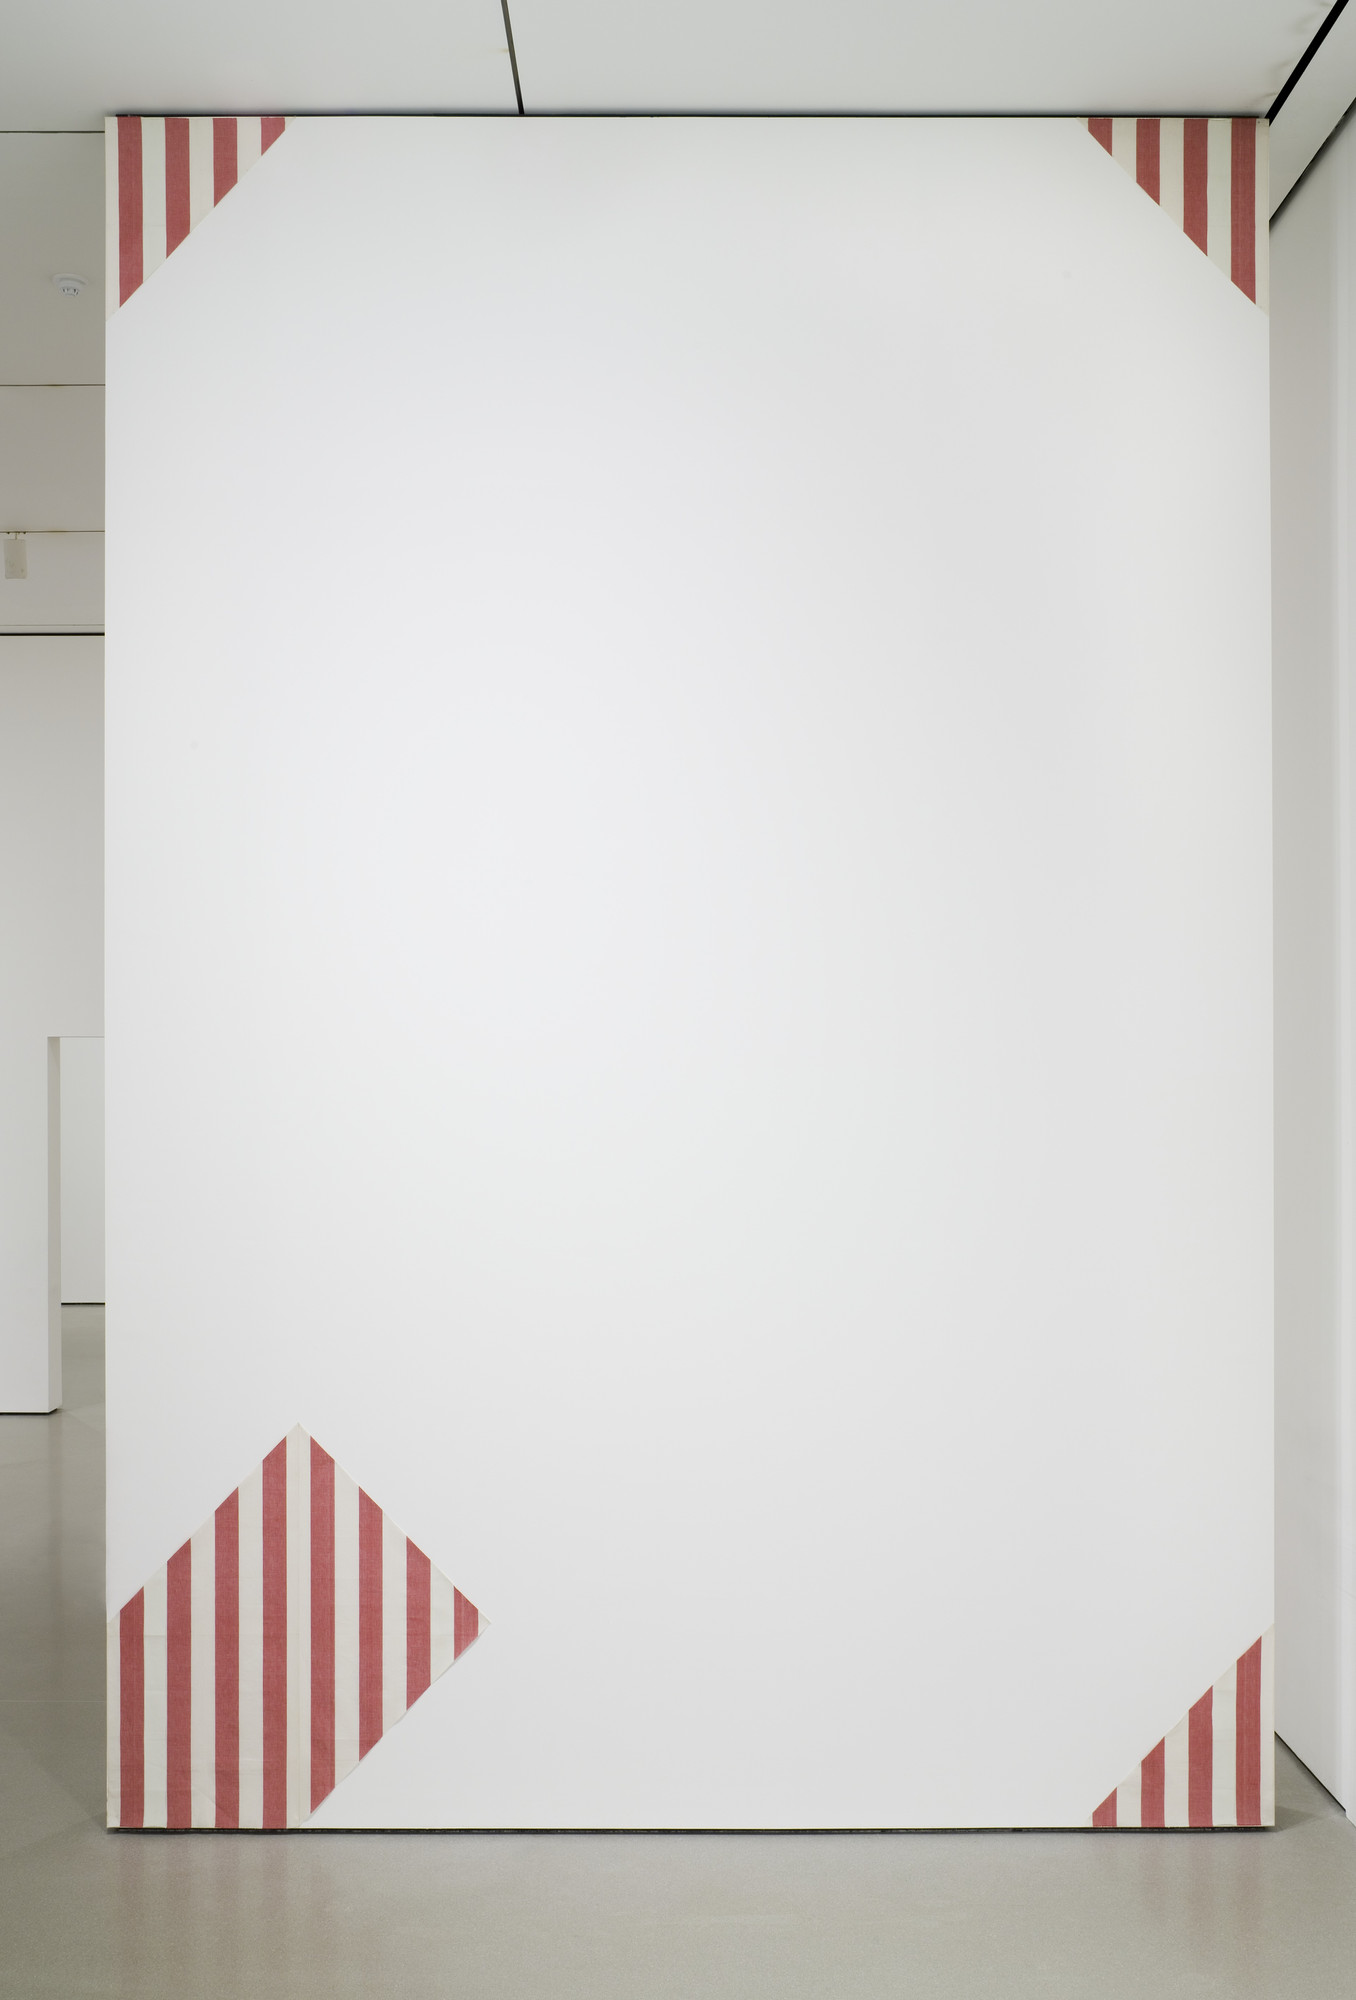 Daniel Buren. One Painting in Four Elements for One Wall. 1969-77